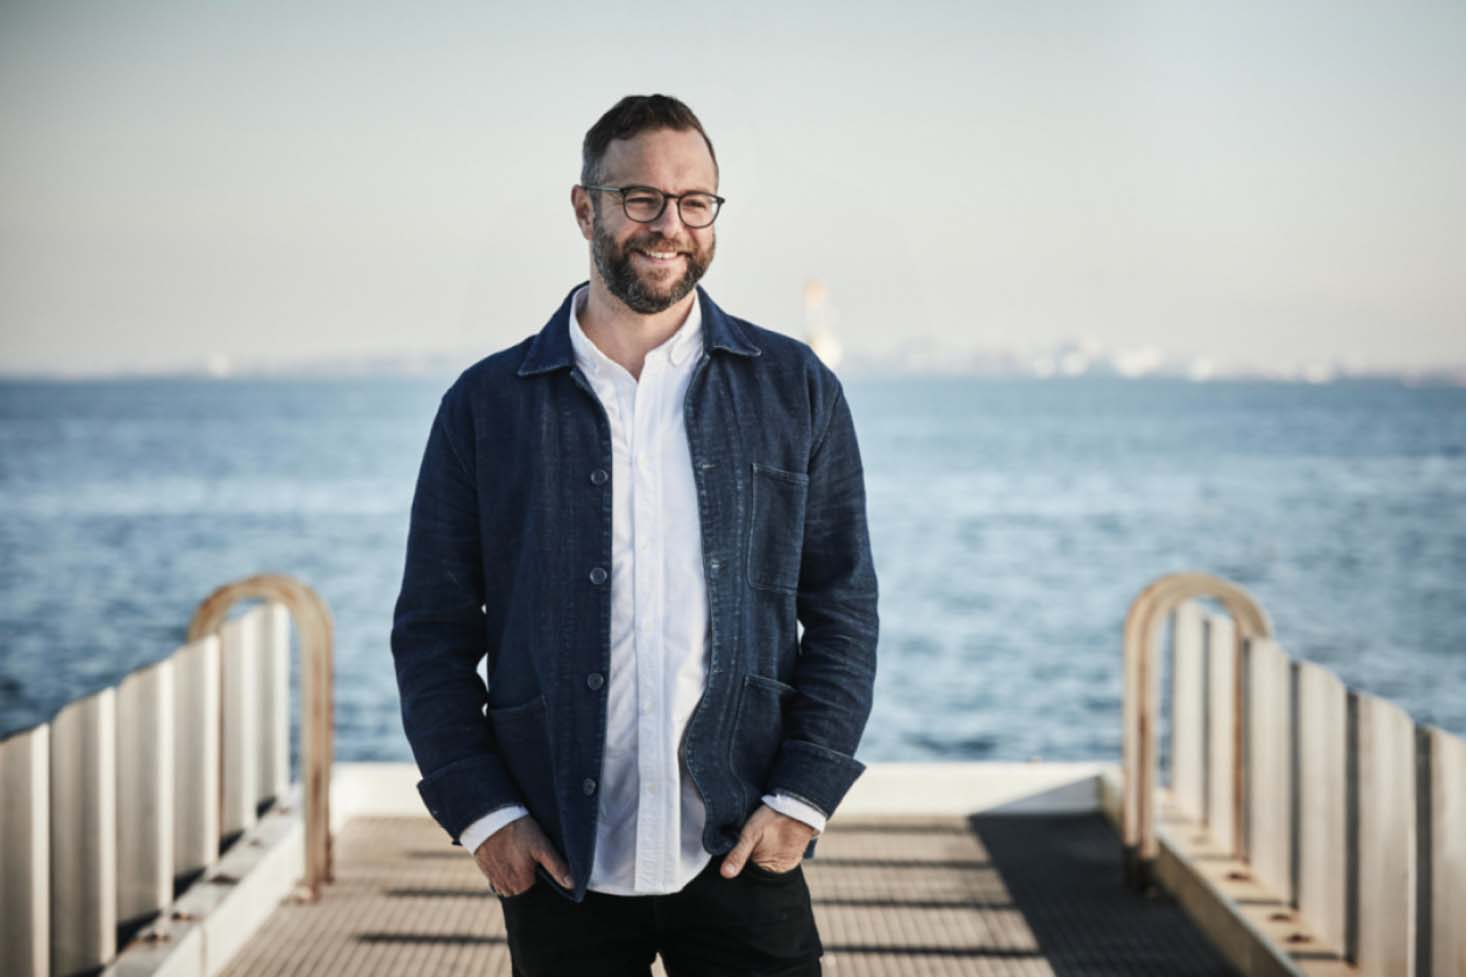 TBWA\SYDNEY SNARES EVAN ROBERTS FROM CLEMENGER BBDO MELBOURNE FOR CHIEF CREATIVE OFFICER ROLE